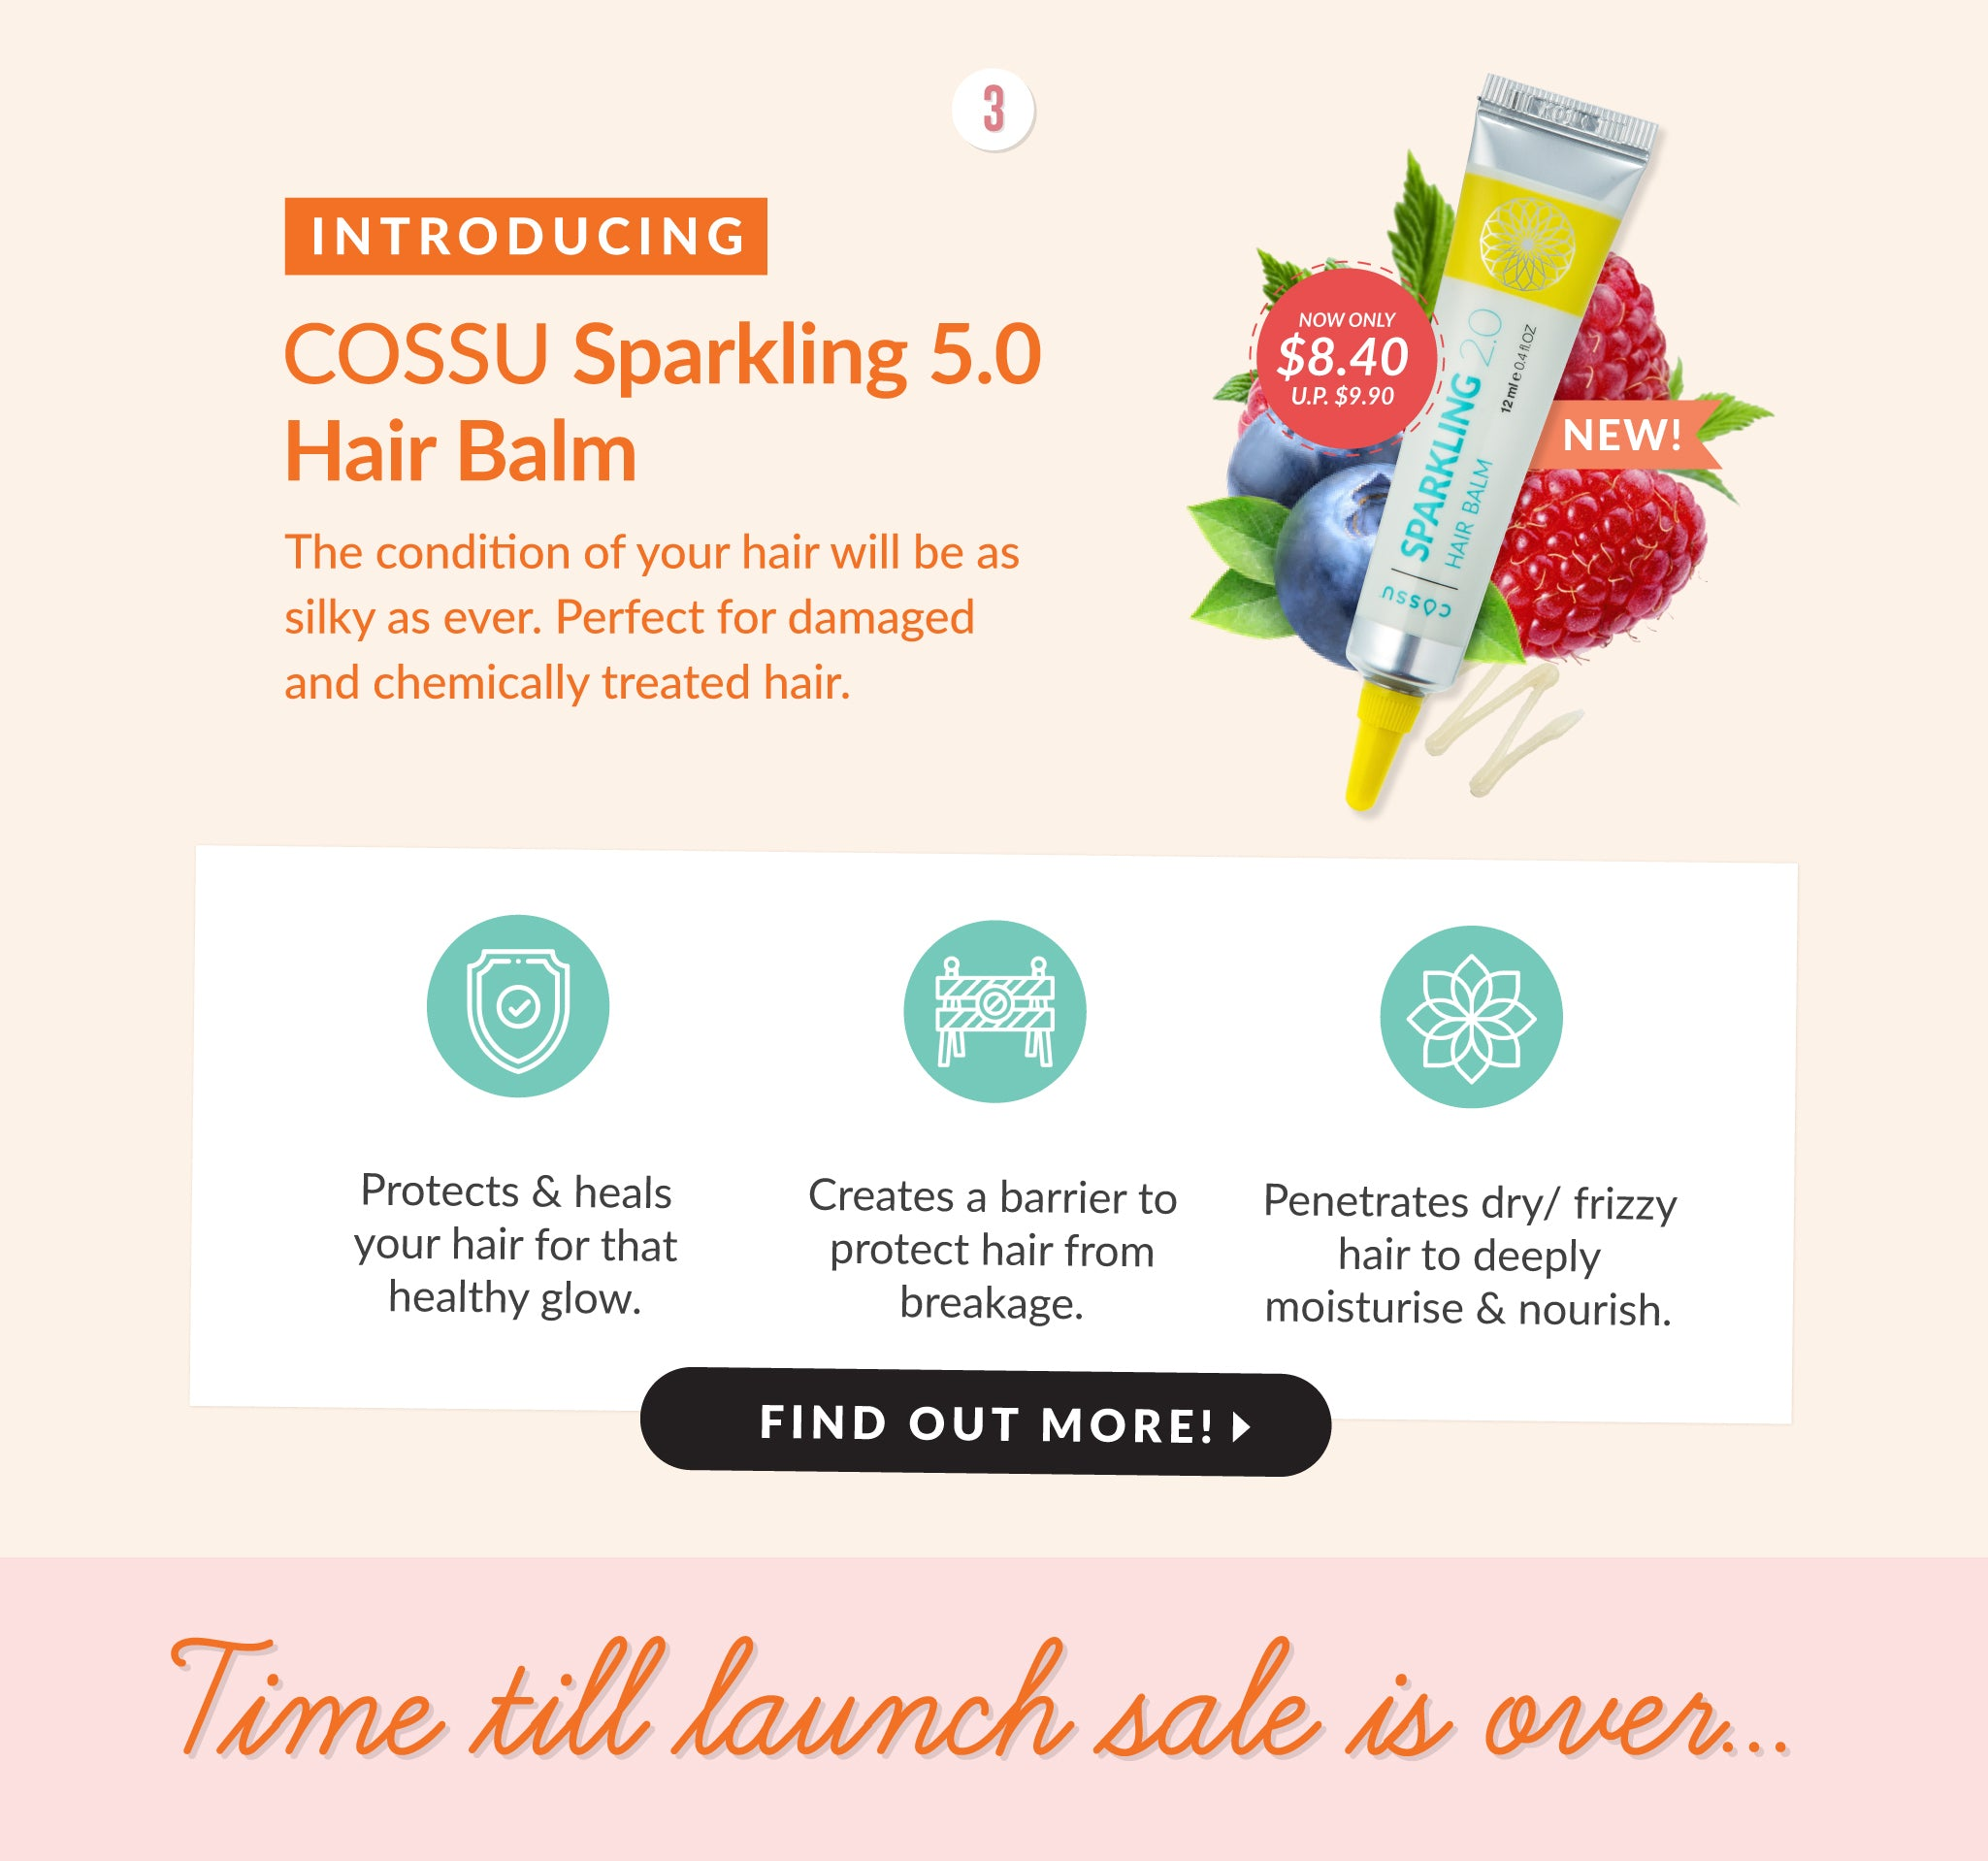 Cossu Sparkling Hair Balm - Repair damaged, bleached, dry or chemically treated hair.